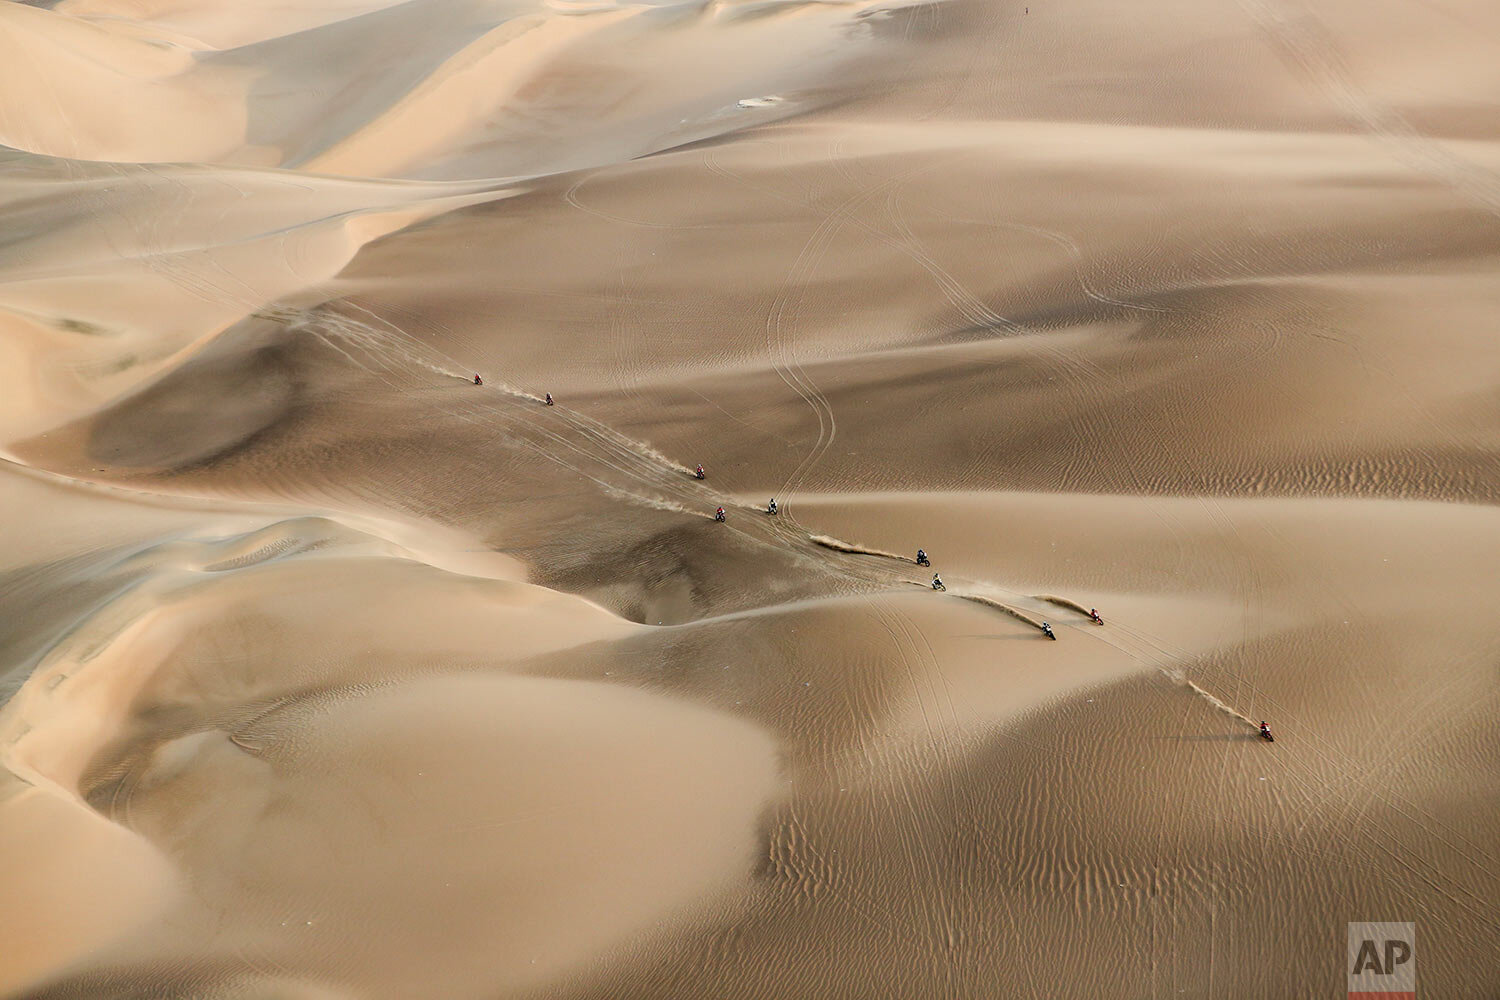 Competitors ride their motorcycles across the dunes during stage nine of the Dakar Rally in Pisco, Peru, on Jan. 16, 2019. (AP Photo/Ricardo Mazalan)